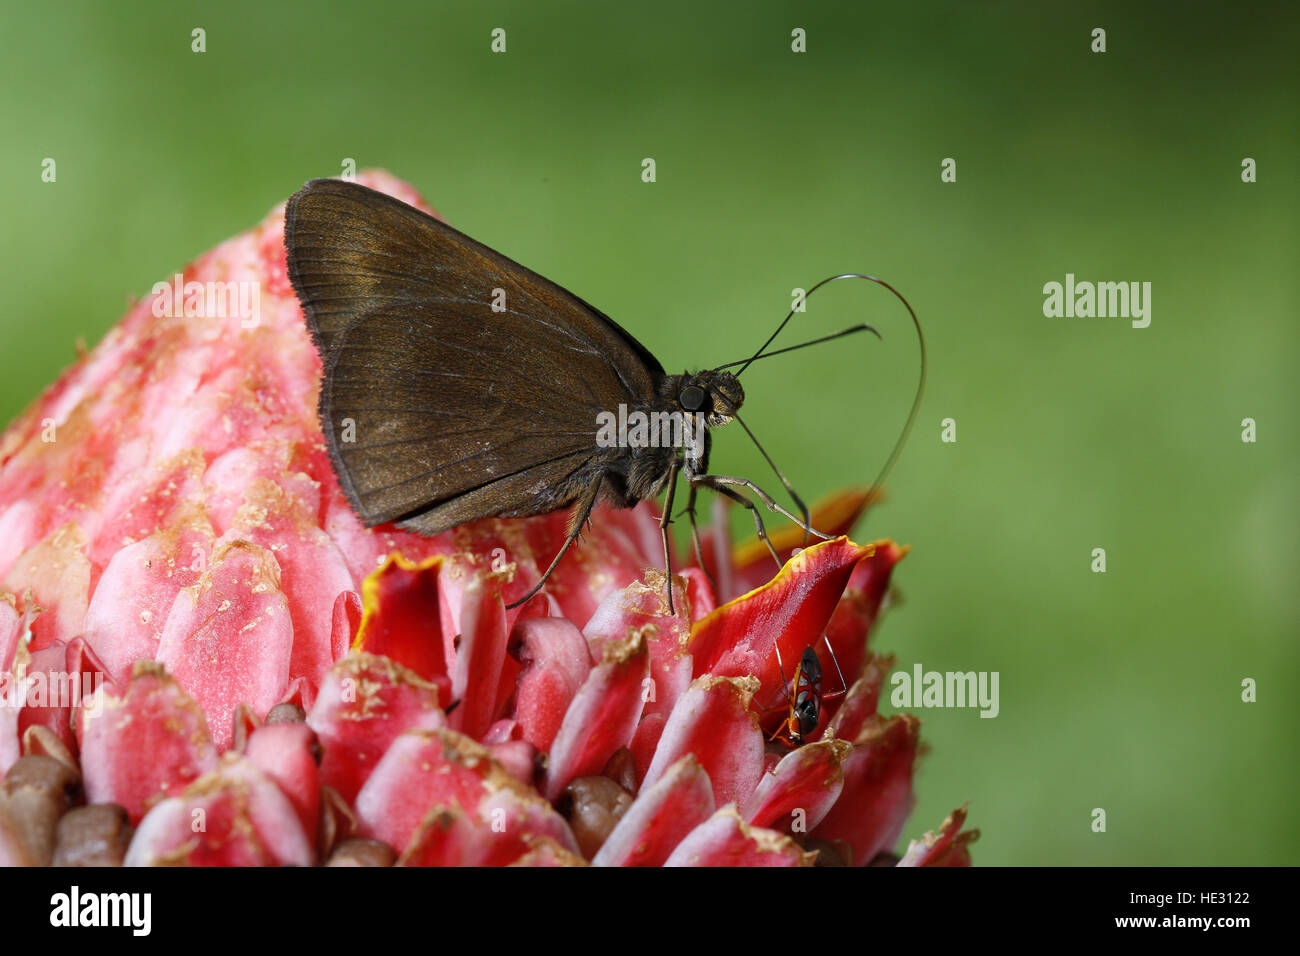 Chocolate Demon Butterfly, Ancistroides nigrita maura, on Ginger flowers Stock Photo